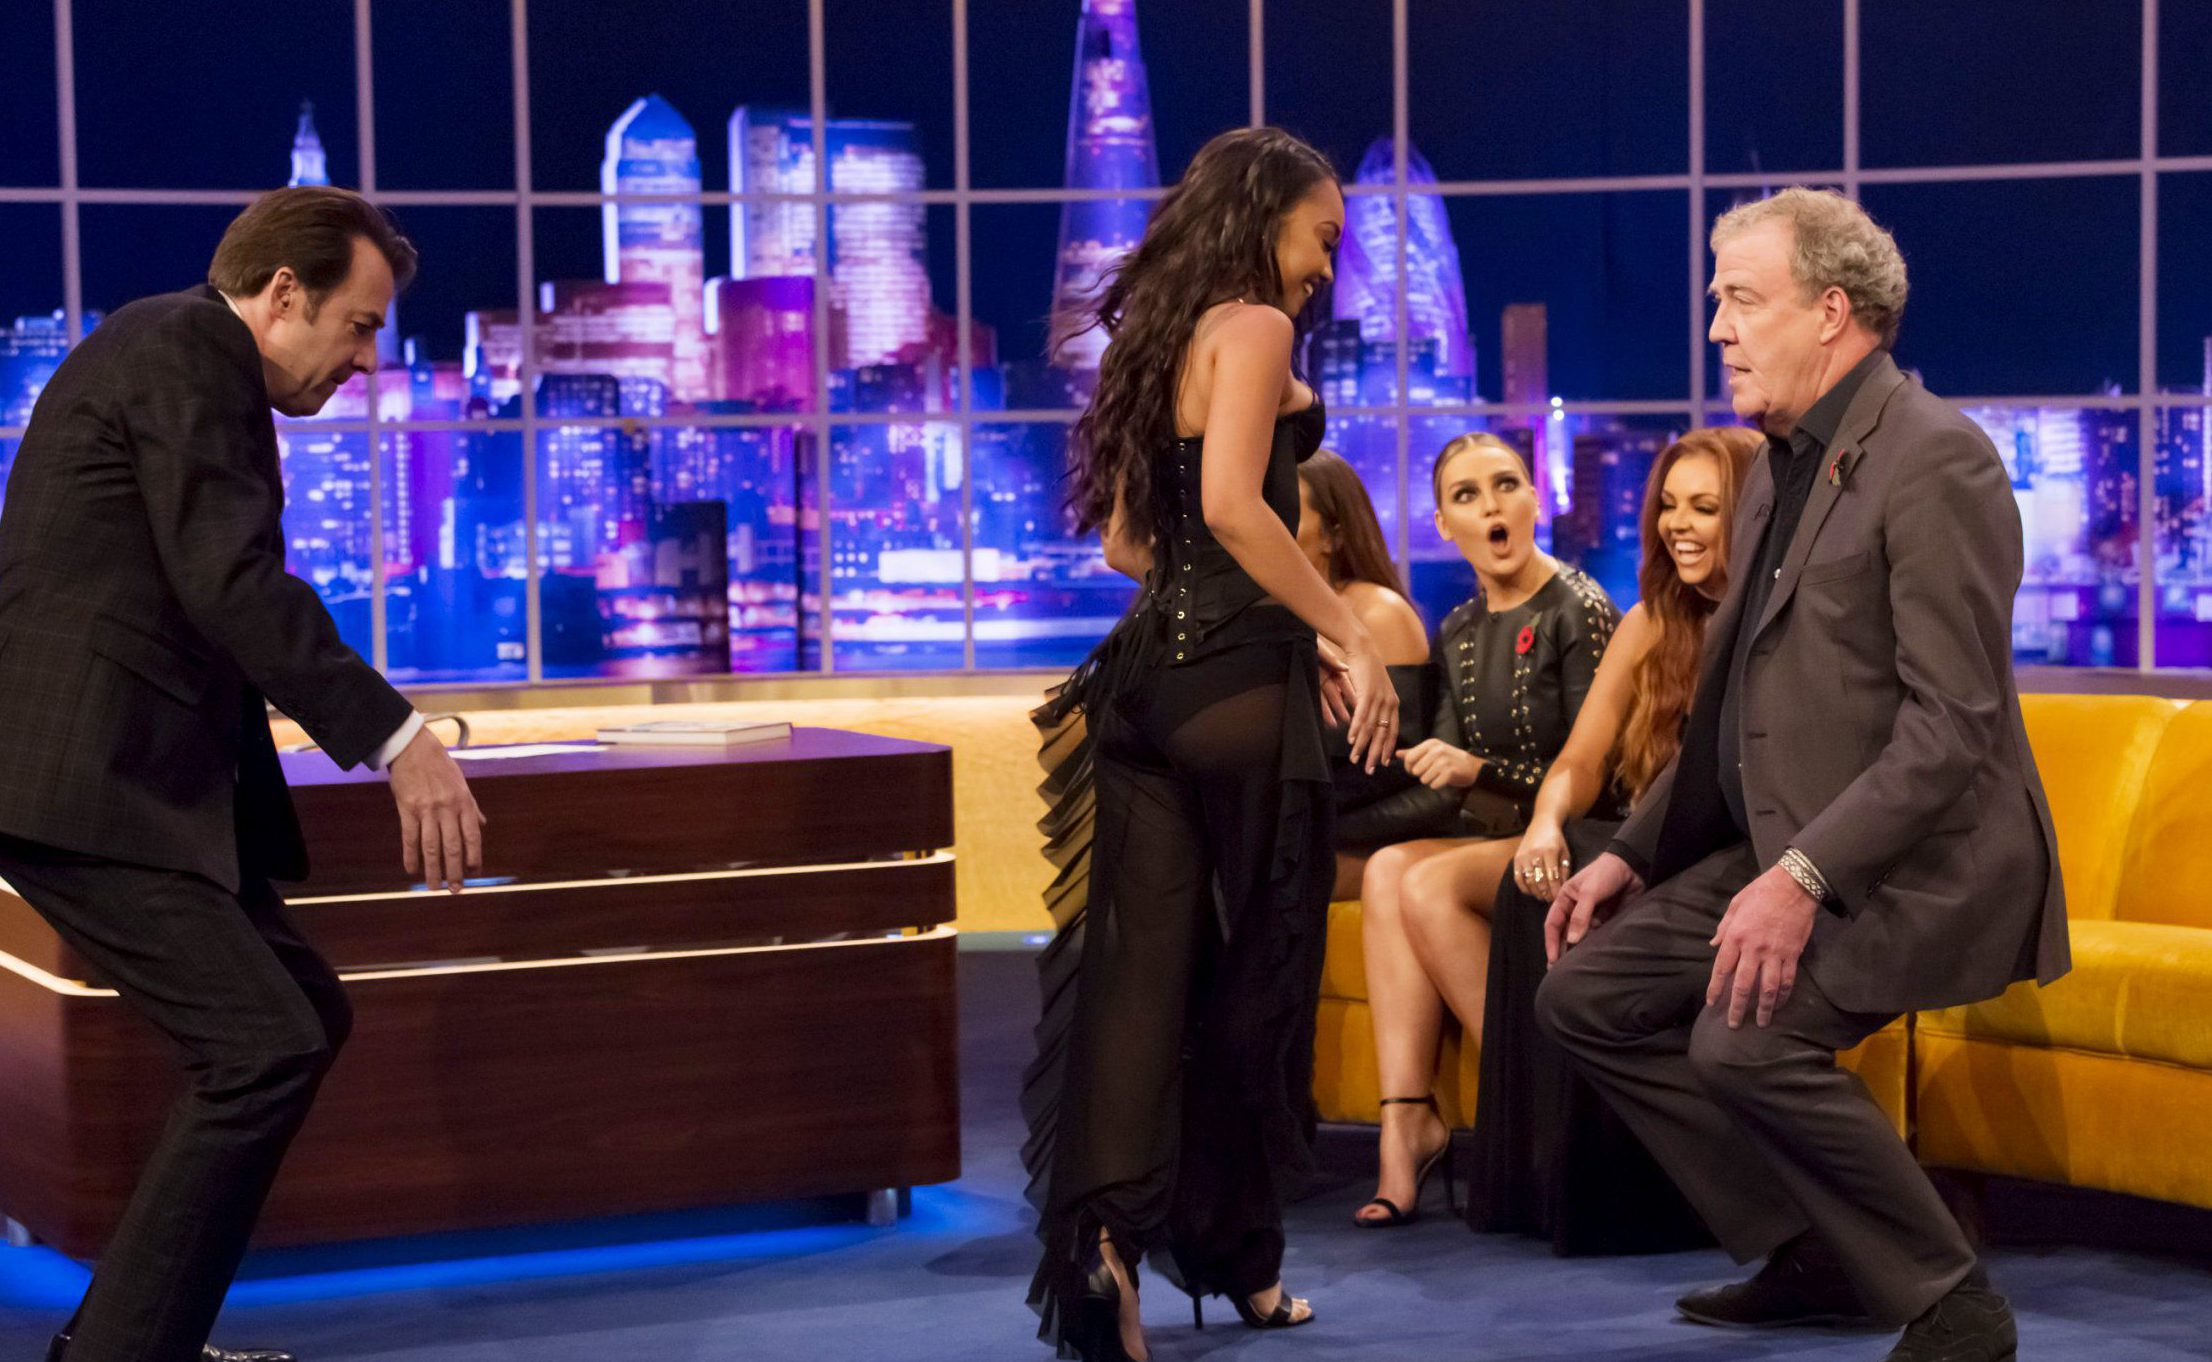 Mandatory Credit: Brian J Ritchie/Hotsauce Editorial Use Only. No merchandising STRICTLY EMBARGOED UNTIL 00.01 FRIDAY 11TH NOVEMBER 2016 PLEASE CREDIT: 'THE JONATHAN ROSS SHOW, SATURDAY 12TH NOVEMBER, 9.30PM ON ITV' Mandatory Credit: Photo by Brian J Ritchie/Hotsauce/REX/Shutterstock (7429400an) Jonathan Ross, Leigh-Anne Pinnock, Perrie Edwards, Jesy Nelson and Jeremy Clarkson 'The Jonathan Ross Show', London, UK - 12 Nov 2016